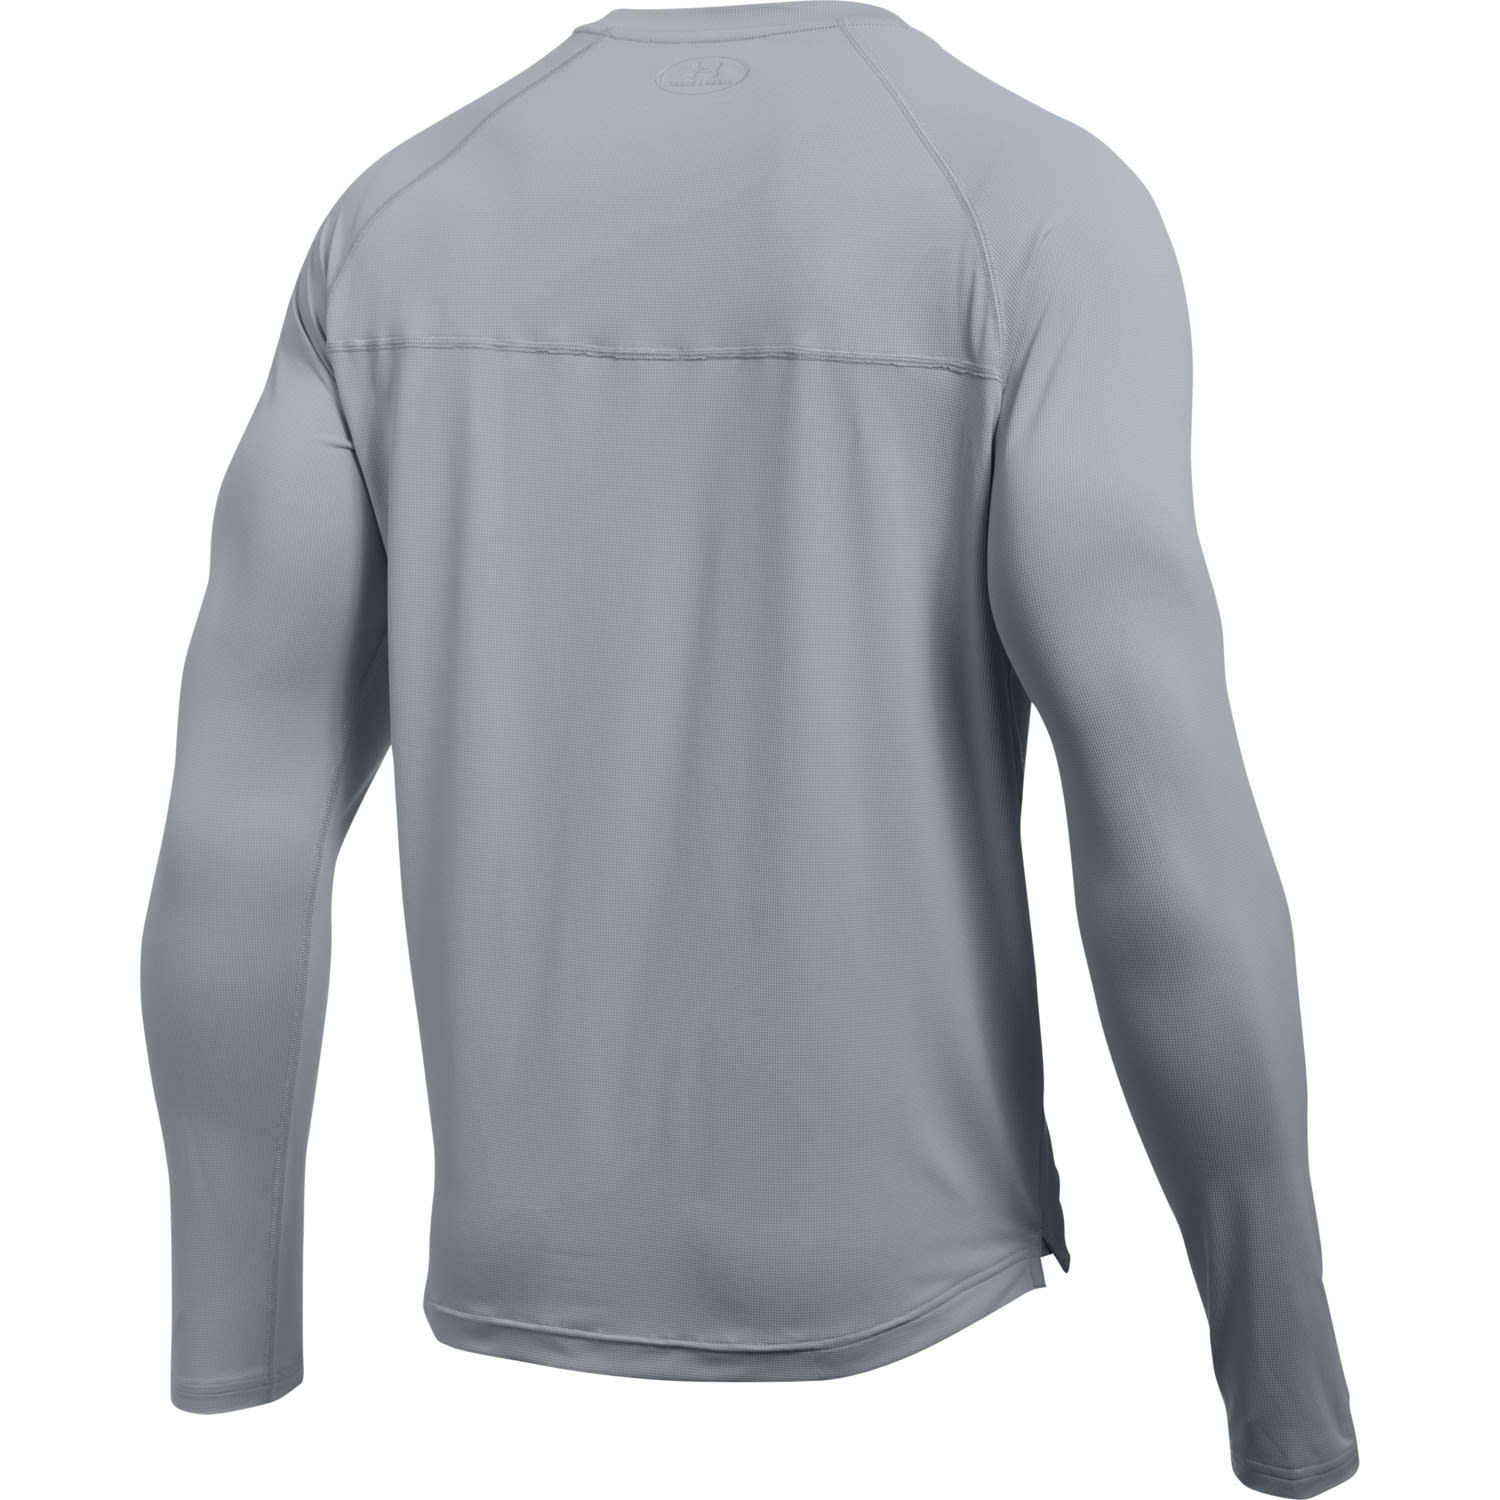 On sale under armour sunblock l s shirt up to 40 off for Ua shirts on sale